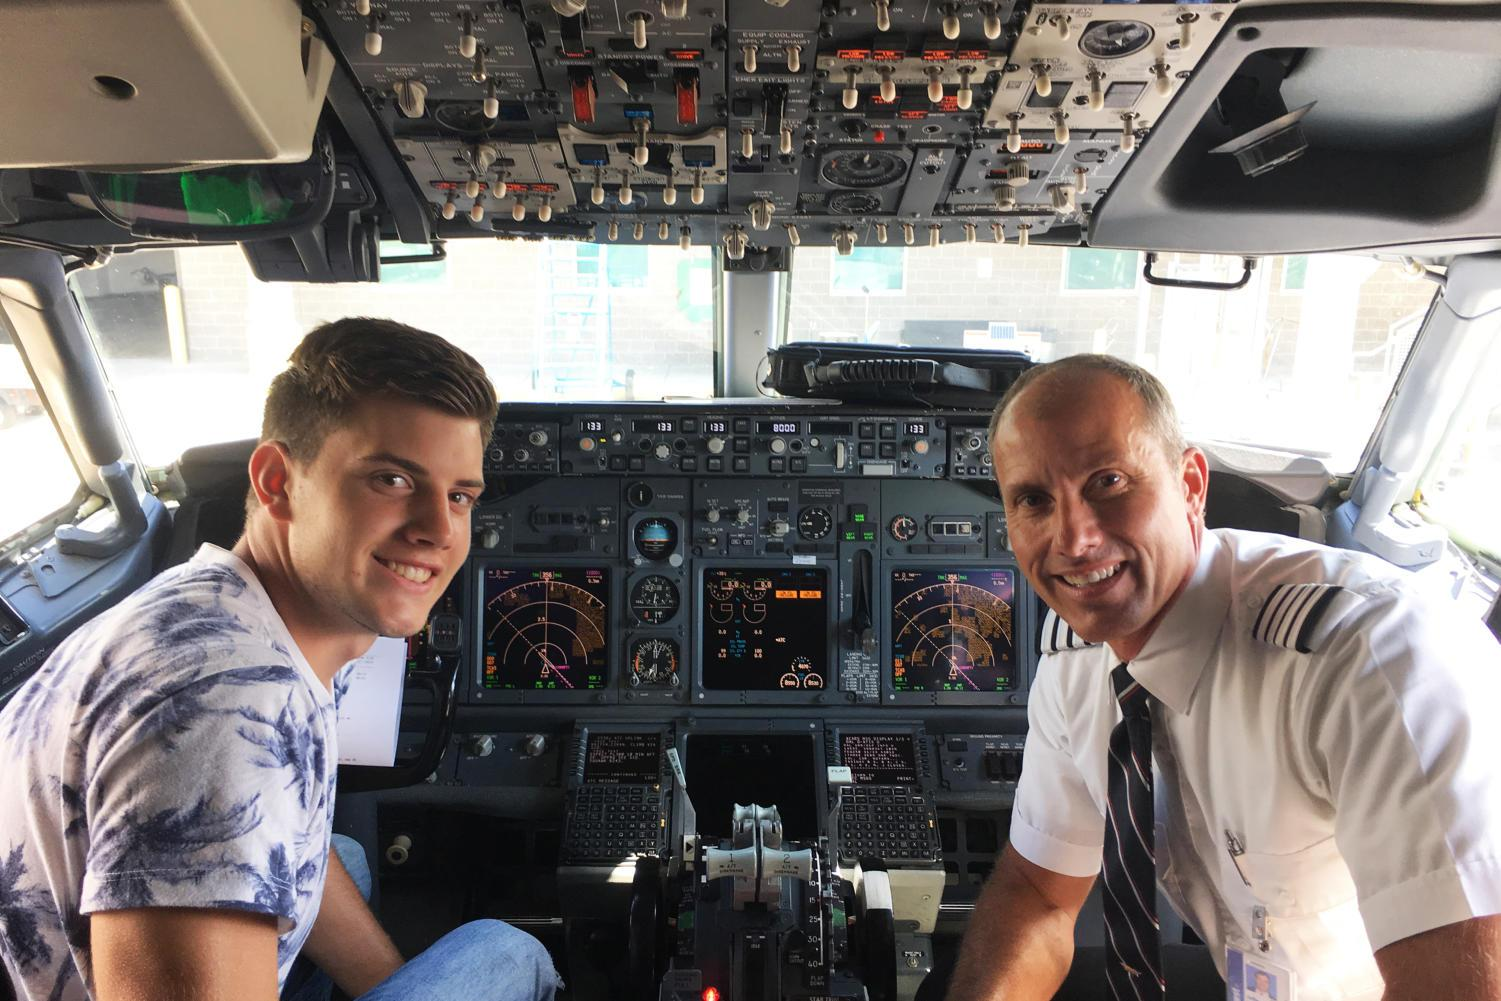 Matt Harris (left) and his father Jeff (right) sit the cockpit of a plane piloted by Jeff.